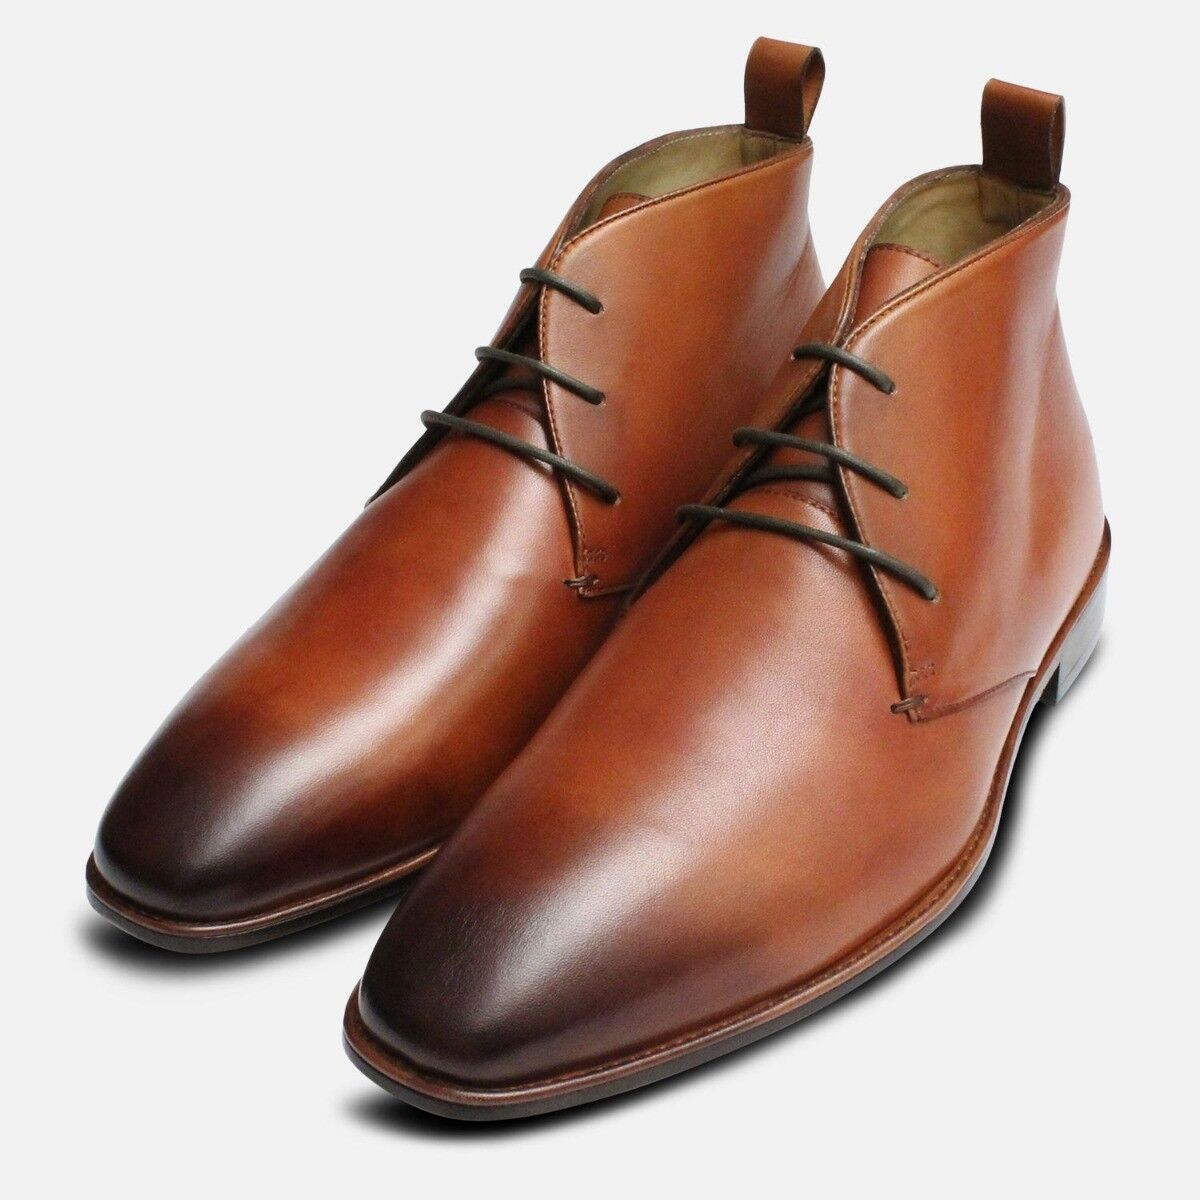 Tan Leather Chukka Boots for Men